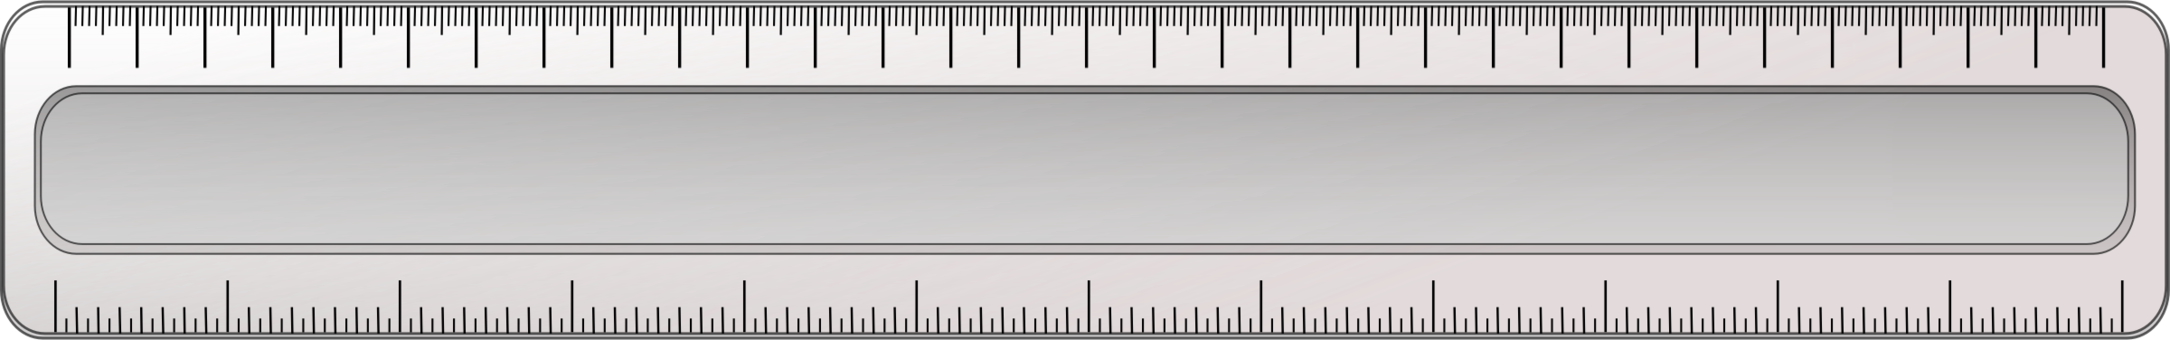 Ruler clipart red. Computer icons download web